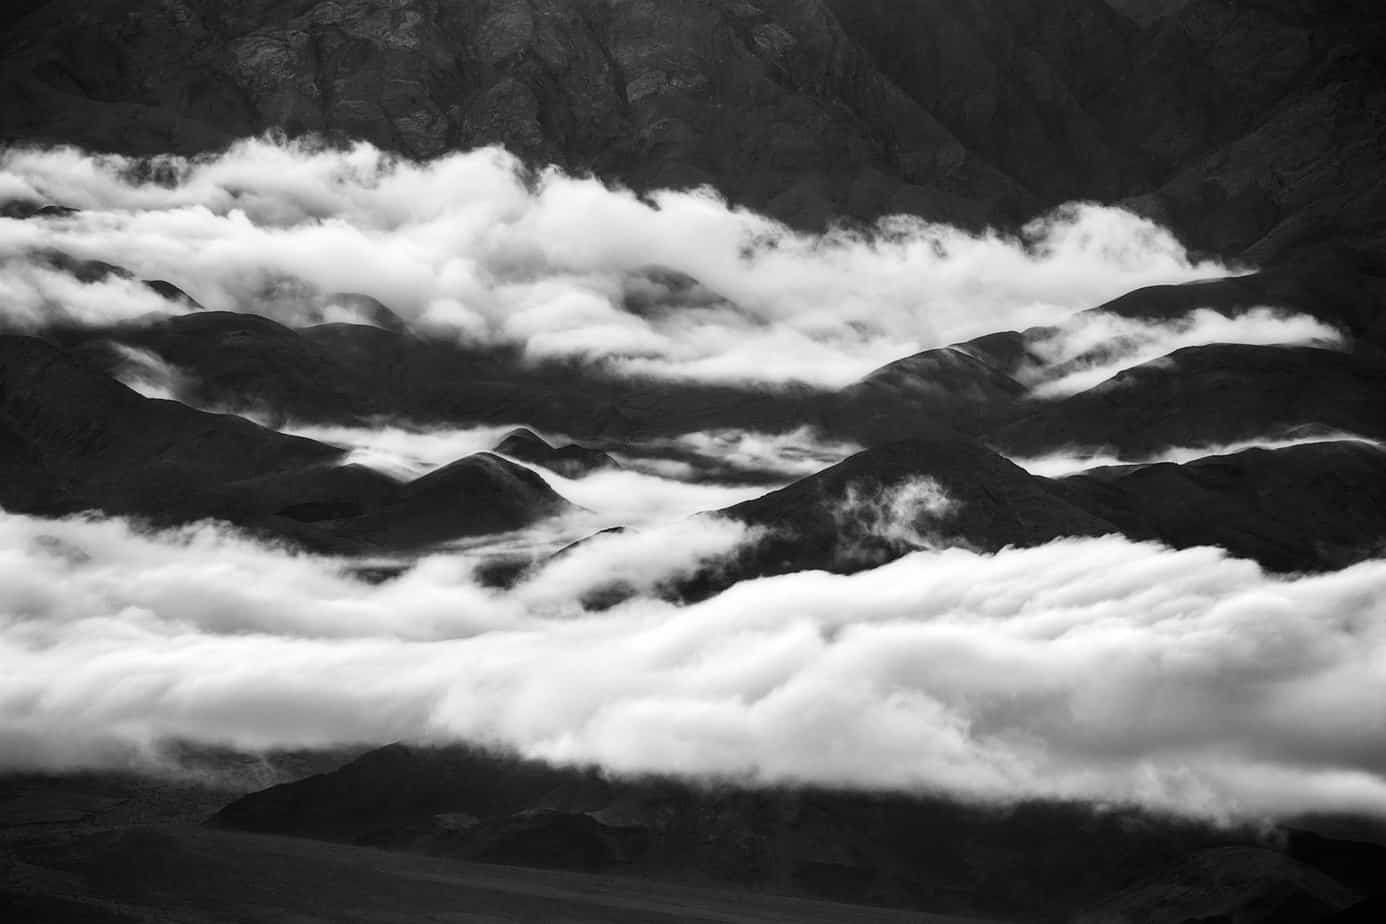 Heavy Rains Leave a Low Blanket of Clouds Hanging Over Death Valley (Death Valley National Park, California)